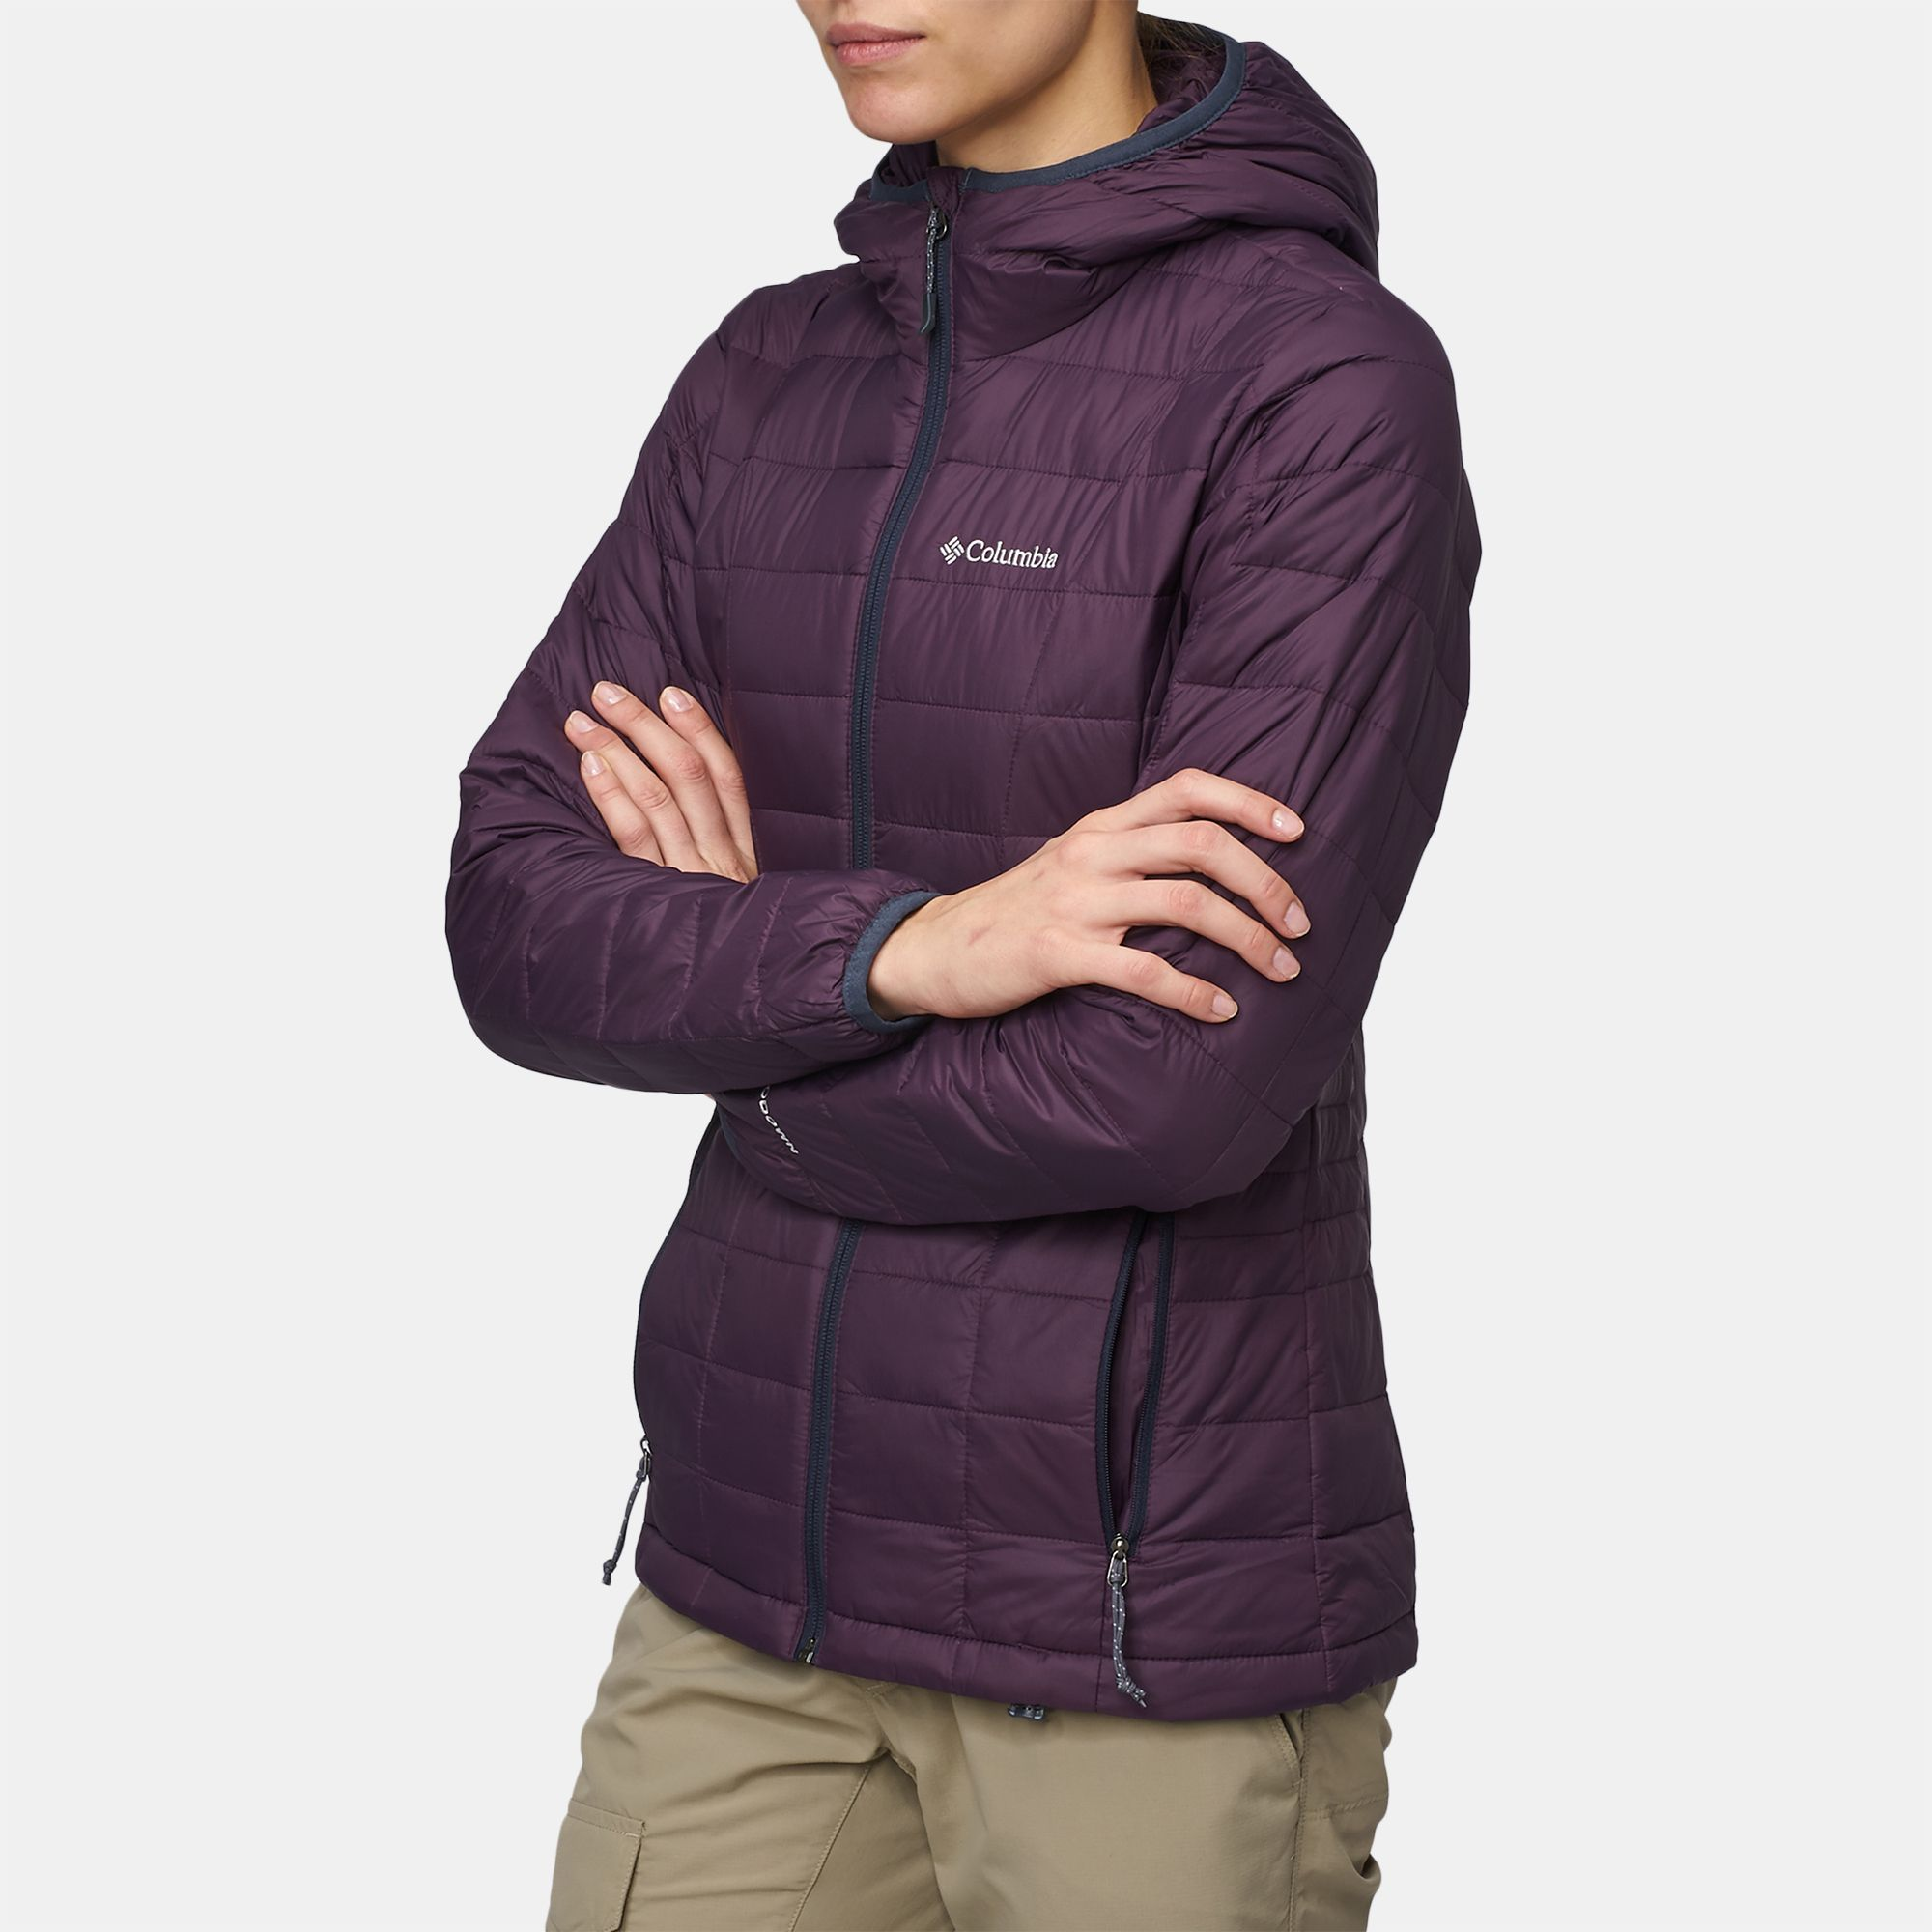 Did you wear Columbia jackets with Omni-Heat technology What feedback